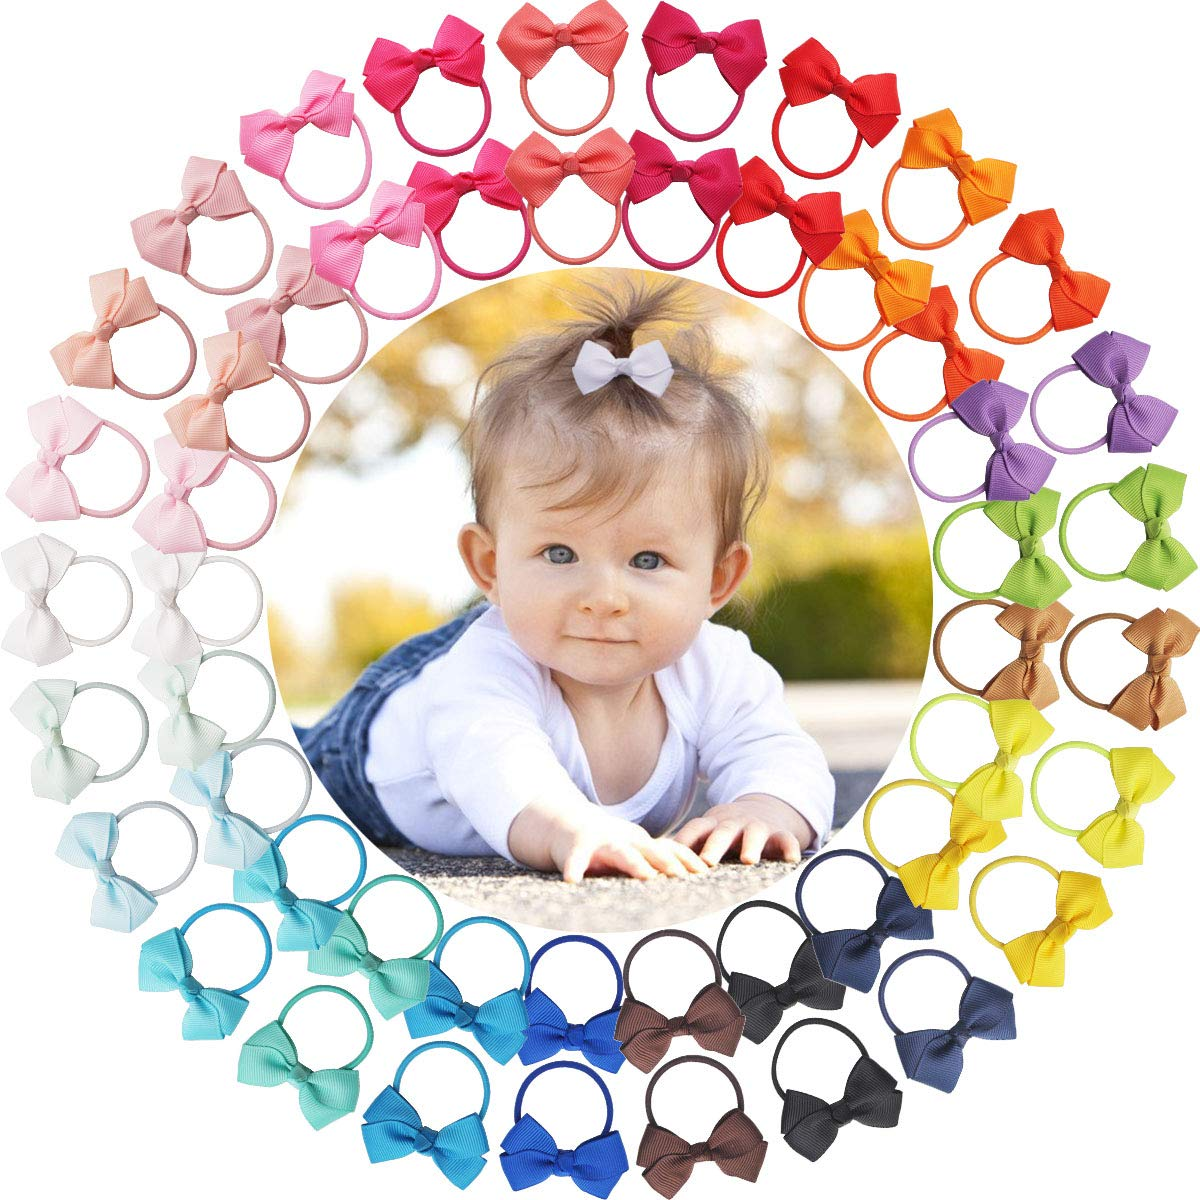 Qearl 50 Pcs 2 Inch Tiny Hair Bows Elastic Ties Grosgrain Ribbon Bows Ponytail Holder Hair Accessories for Infants Toddlers Kids In Pairs